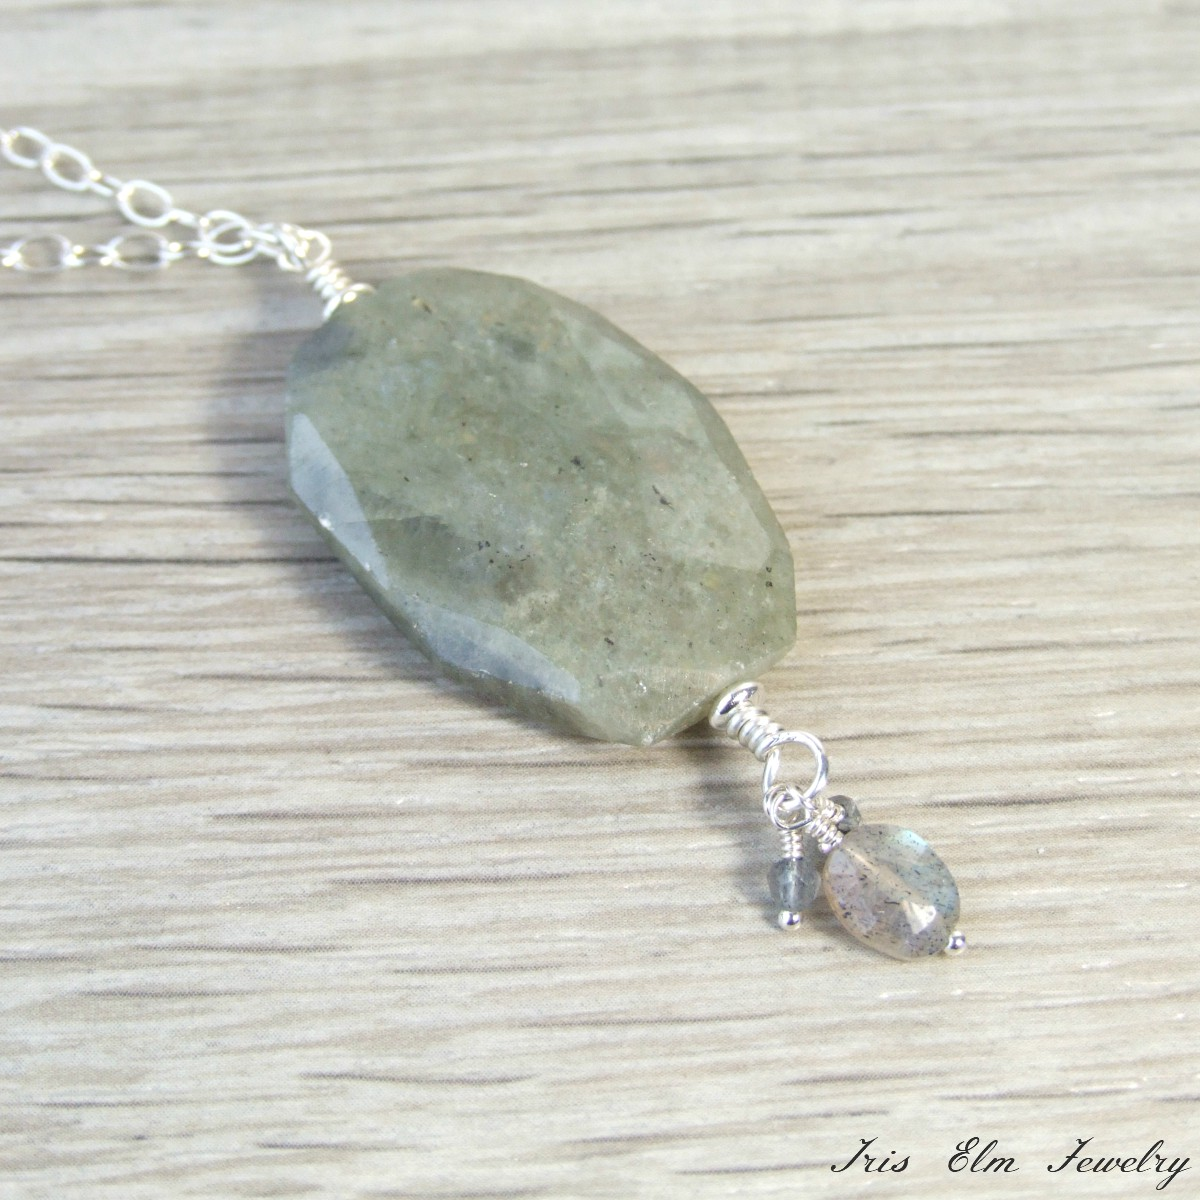 product by necklace labradorite original prisha prishajewels notonthehighstreet jewels com statement chunky